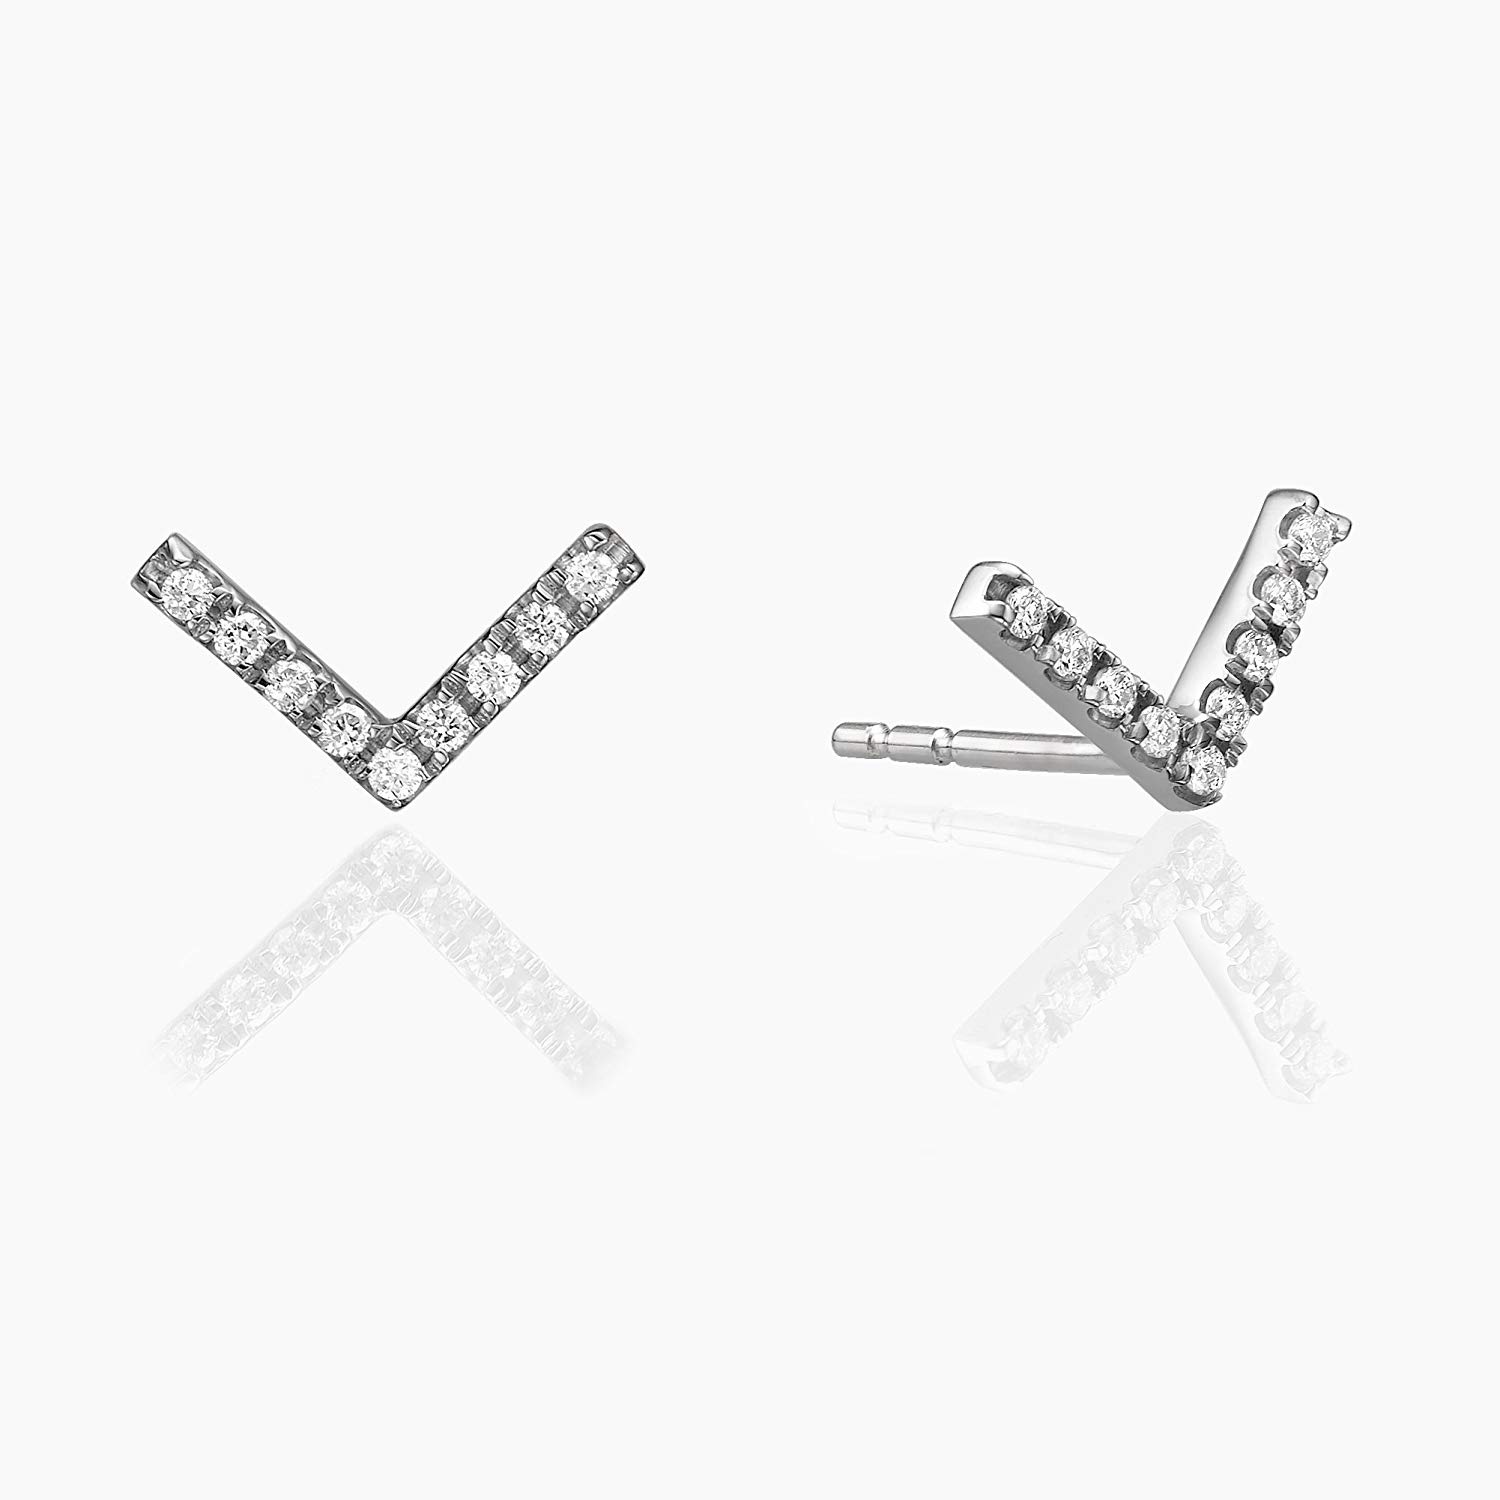 Get Quotations V Shaped Studs Diamond Earrings 14k Solid White Gold Stud